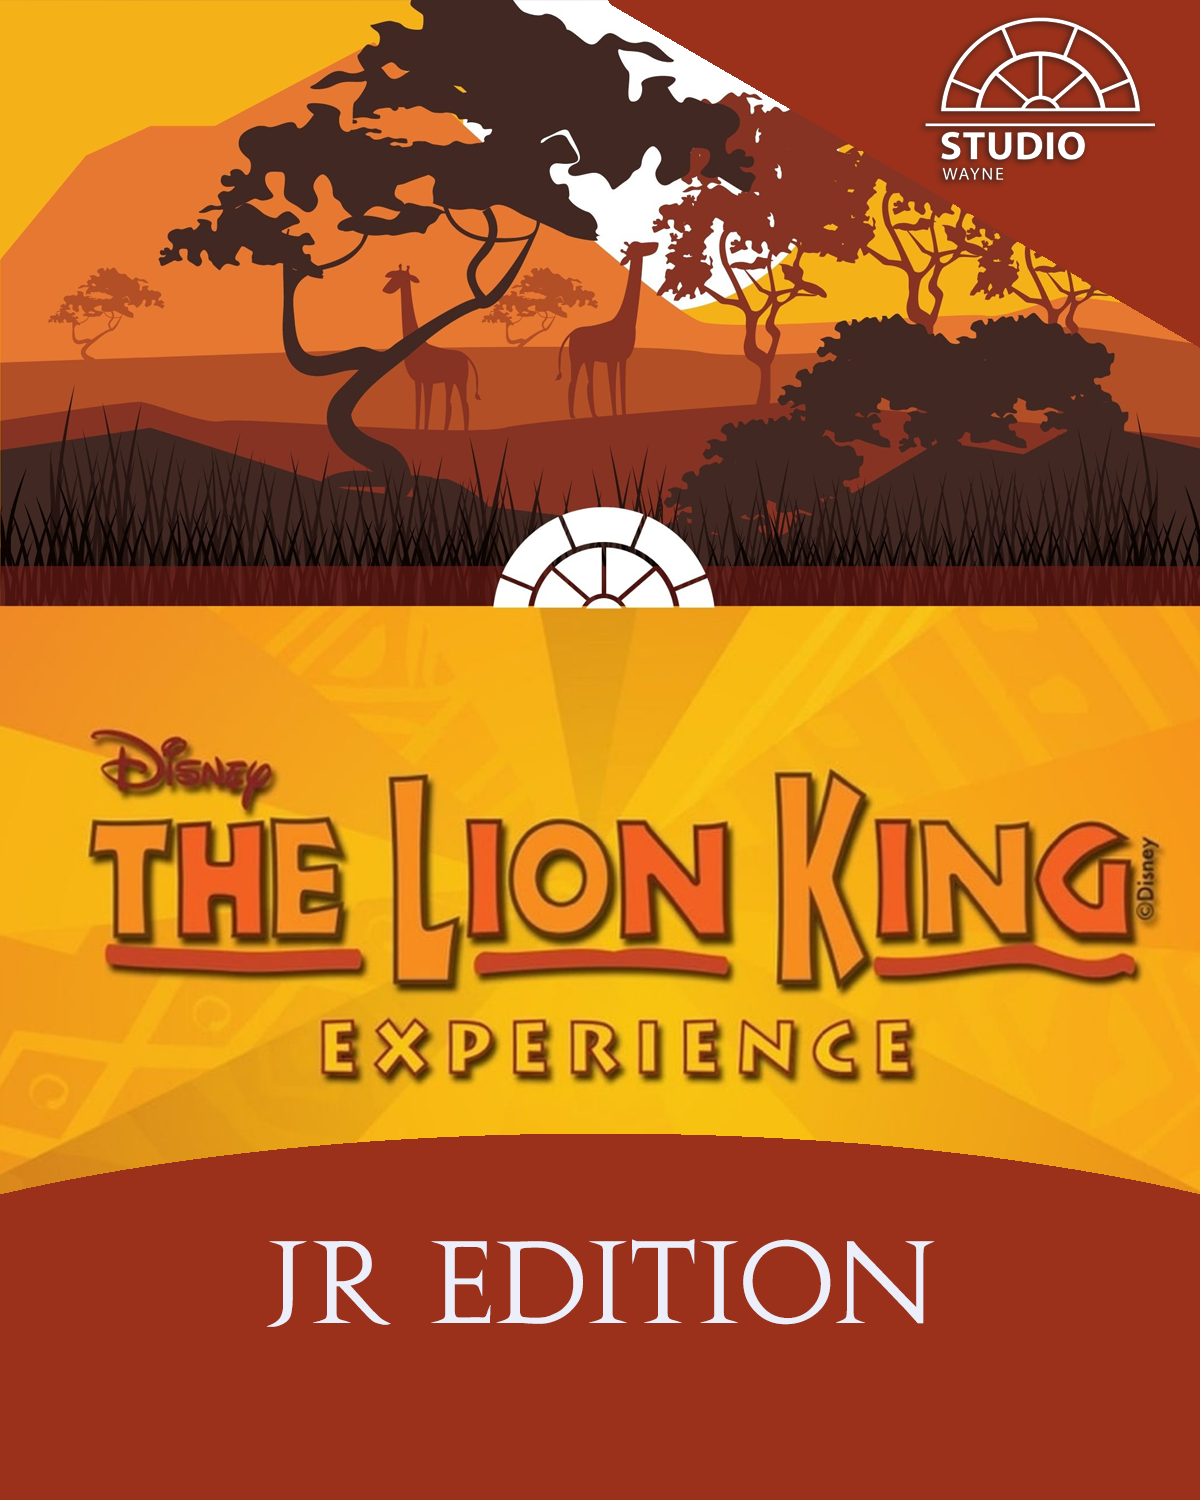 Studio Wayne: Lion King Experience, JR Edition